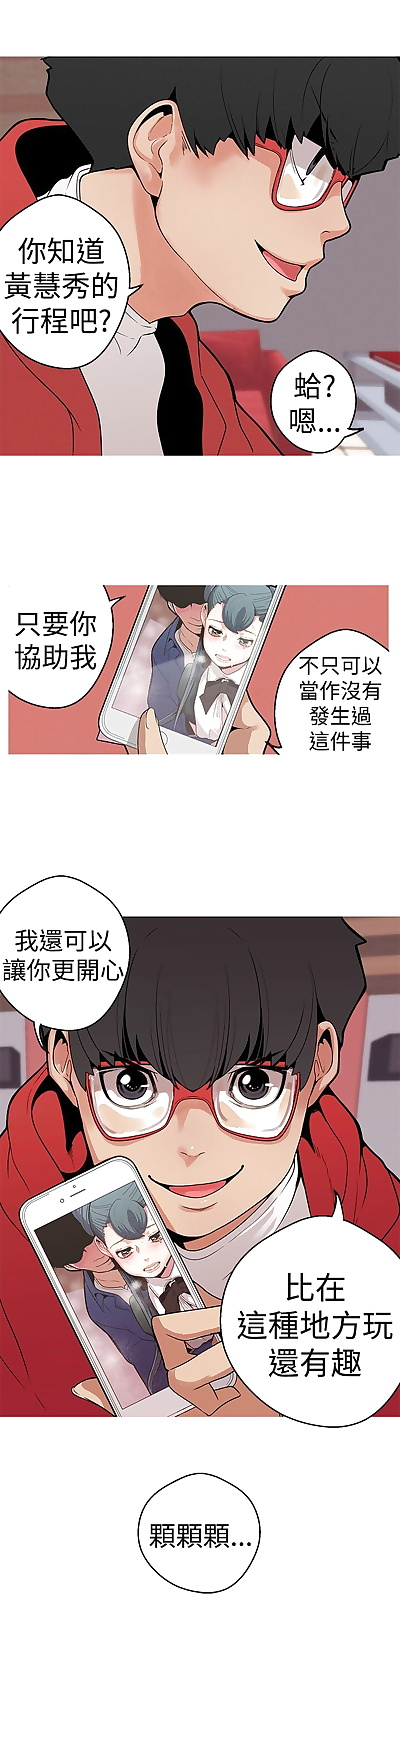 chinese manga 女神狩猎8-11 Chinese - part 3, full color , manga